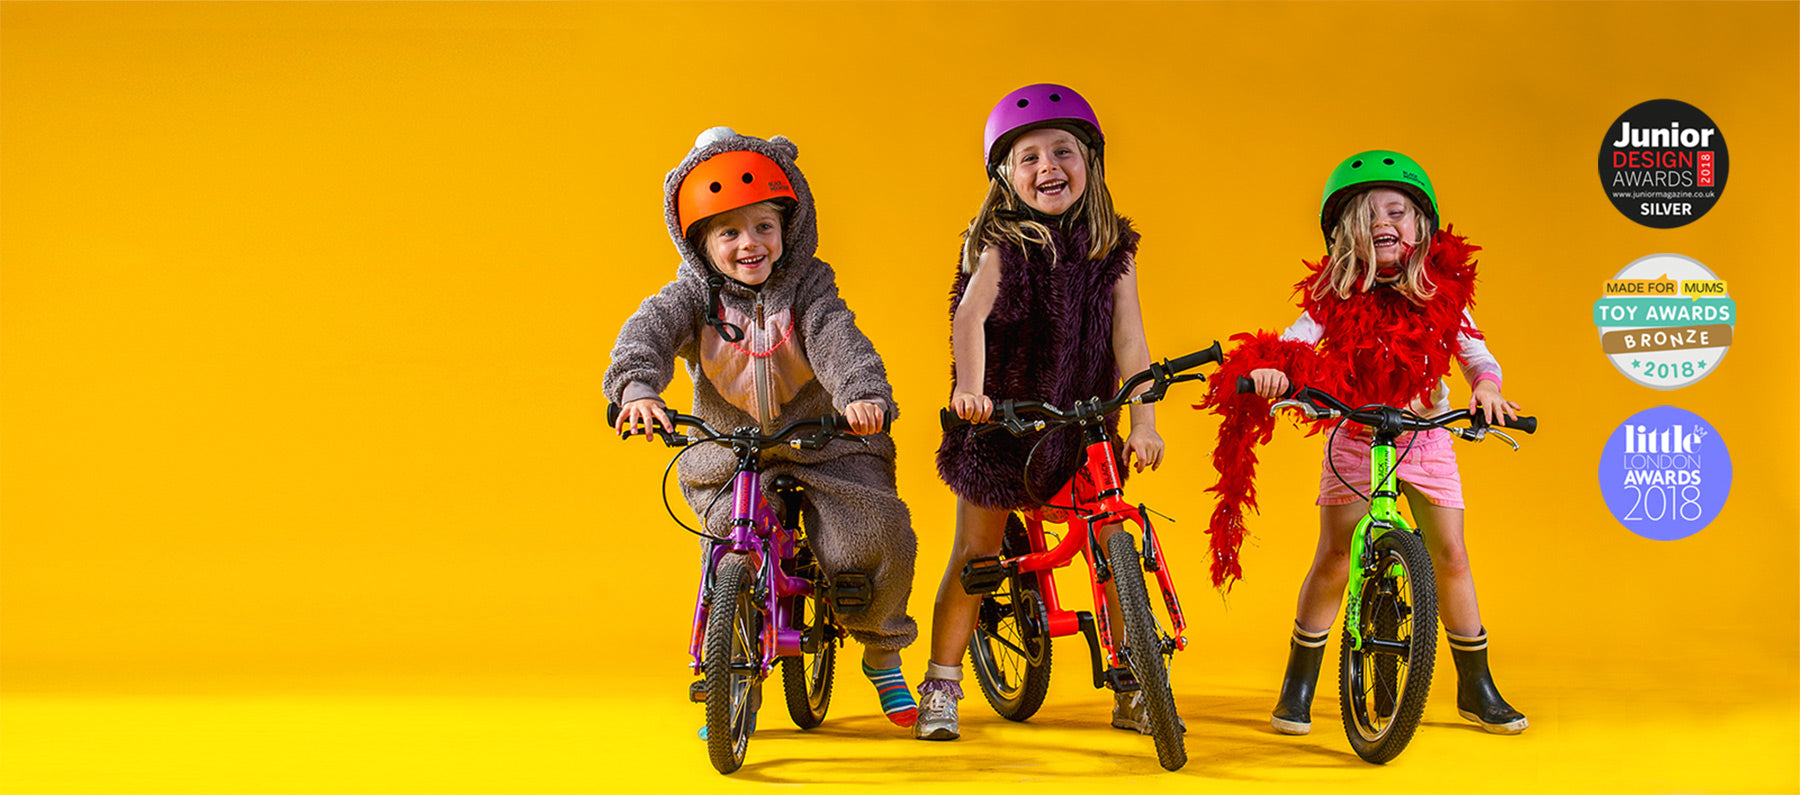 Lightweight aluminium children's bicycles and balance bikes